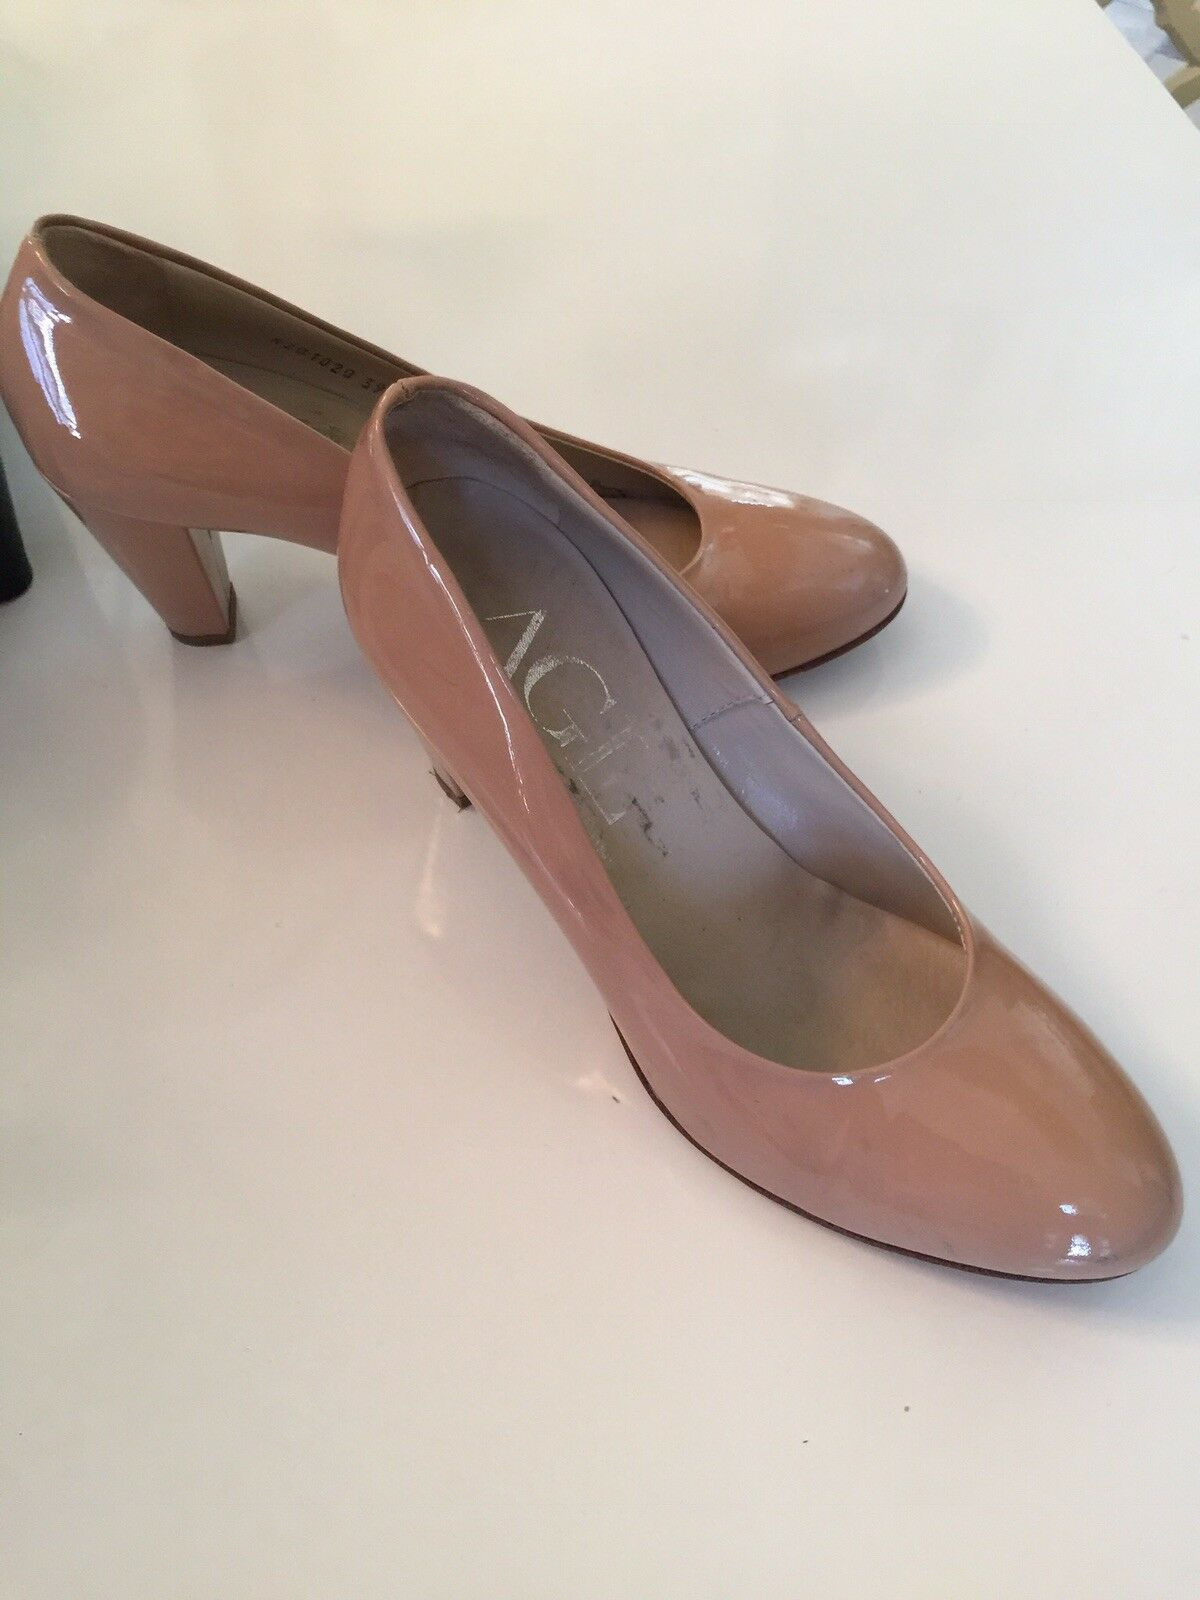 WOMEN'S  AGL 'Camel' PATENT LEATHER HEELS SIZE EUR 39 9 1/2 US 9 39 35820a